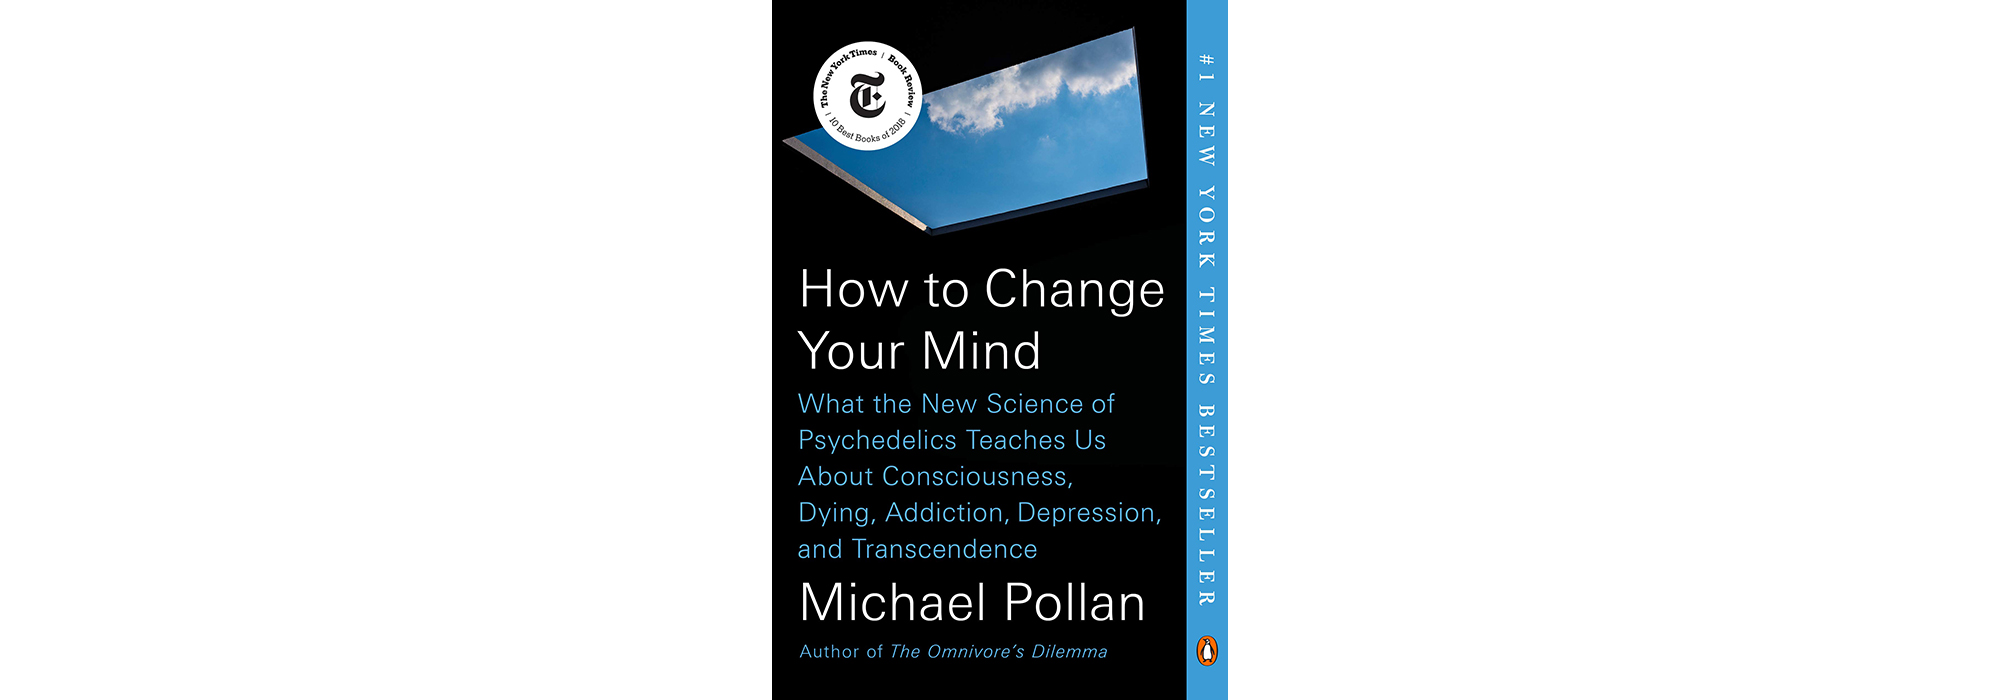 Cover of How to Change Your Mind, by Michael Pollan